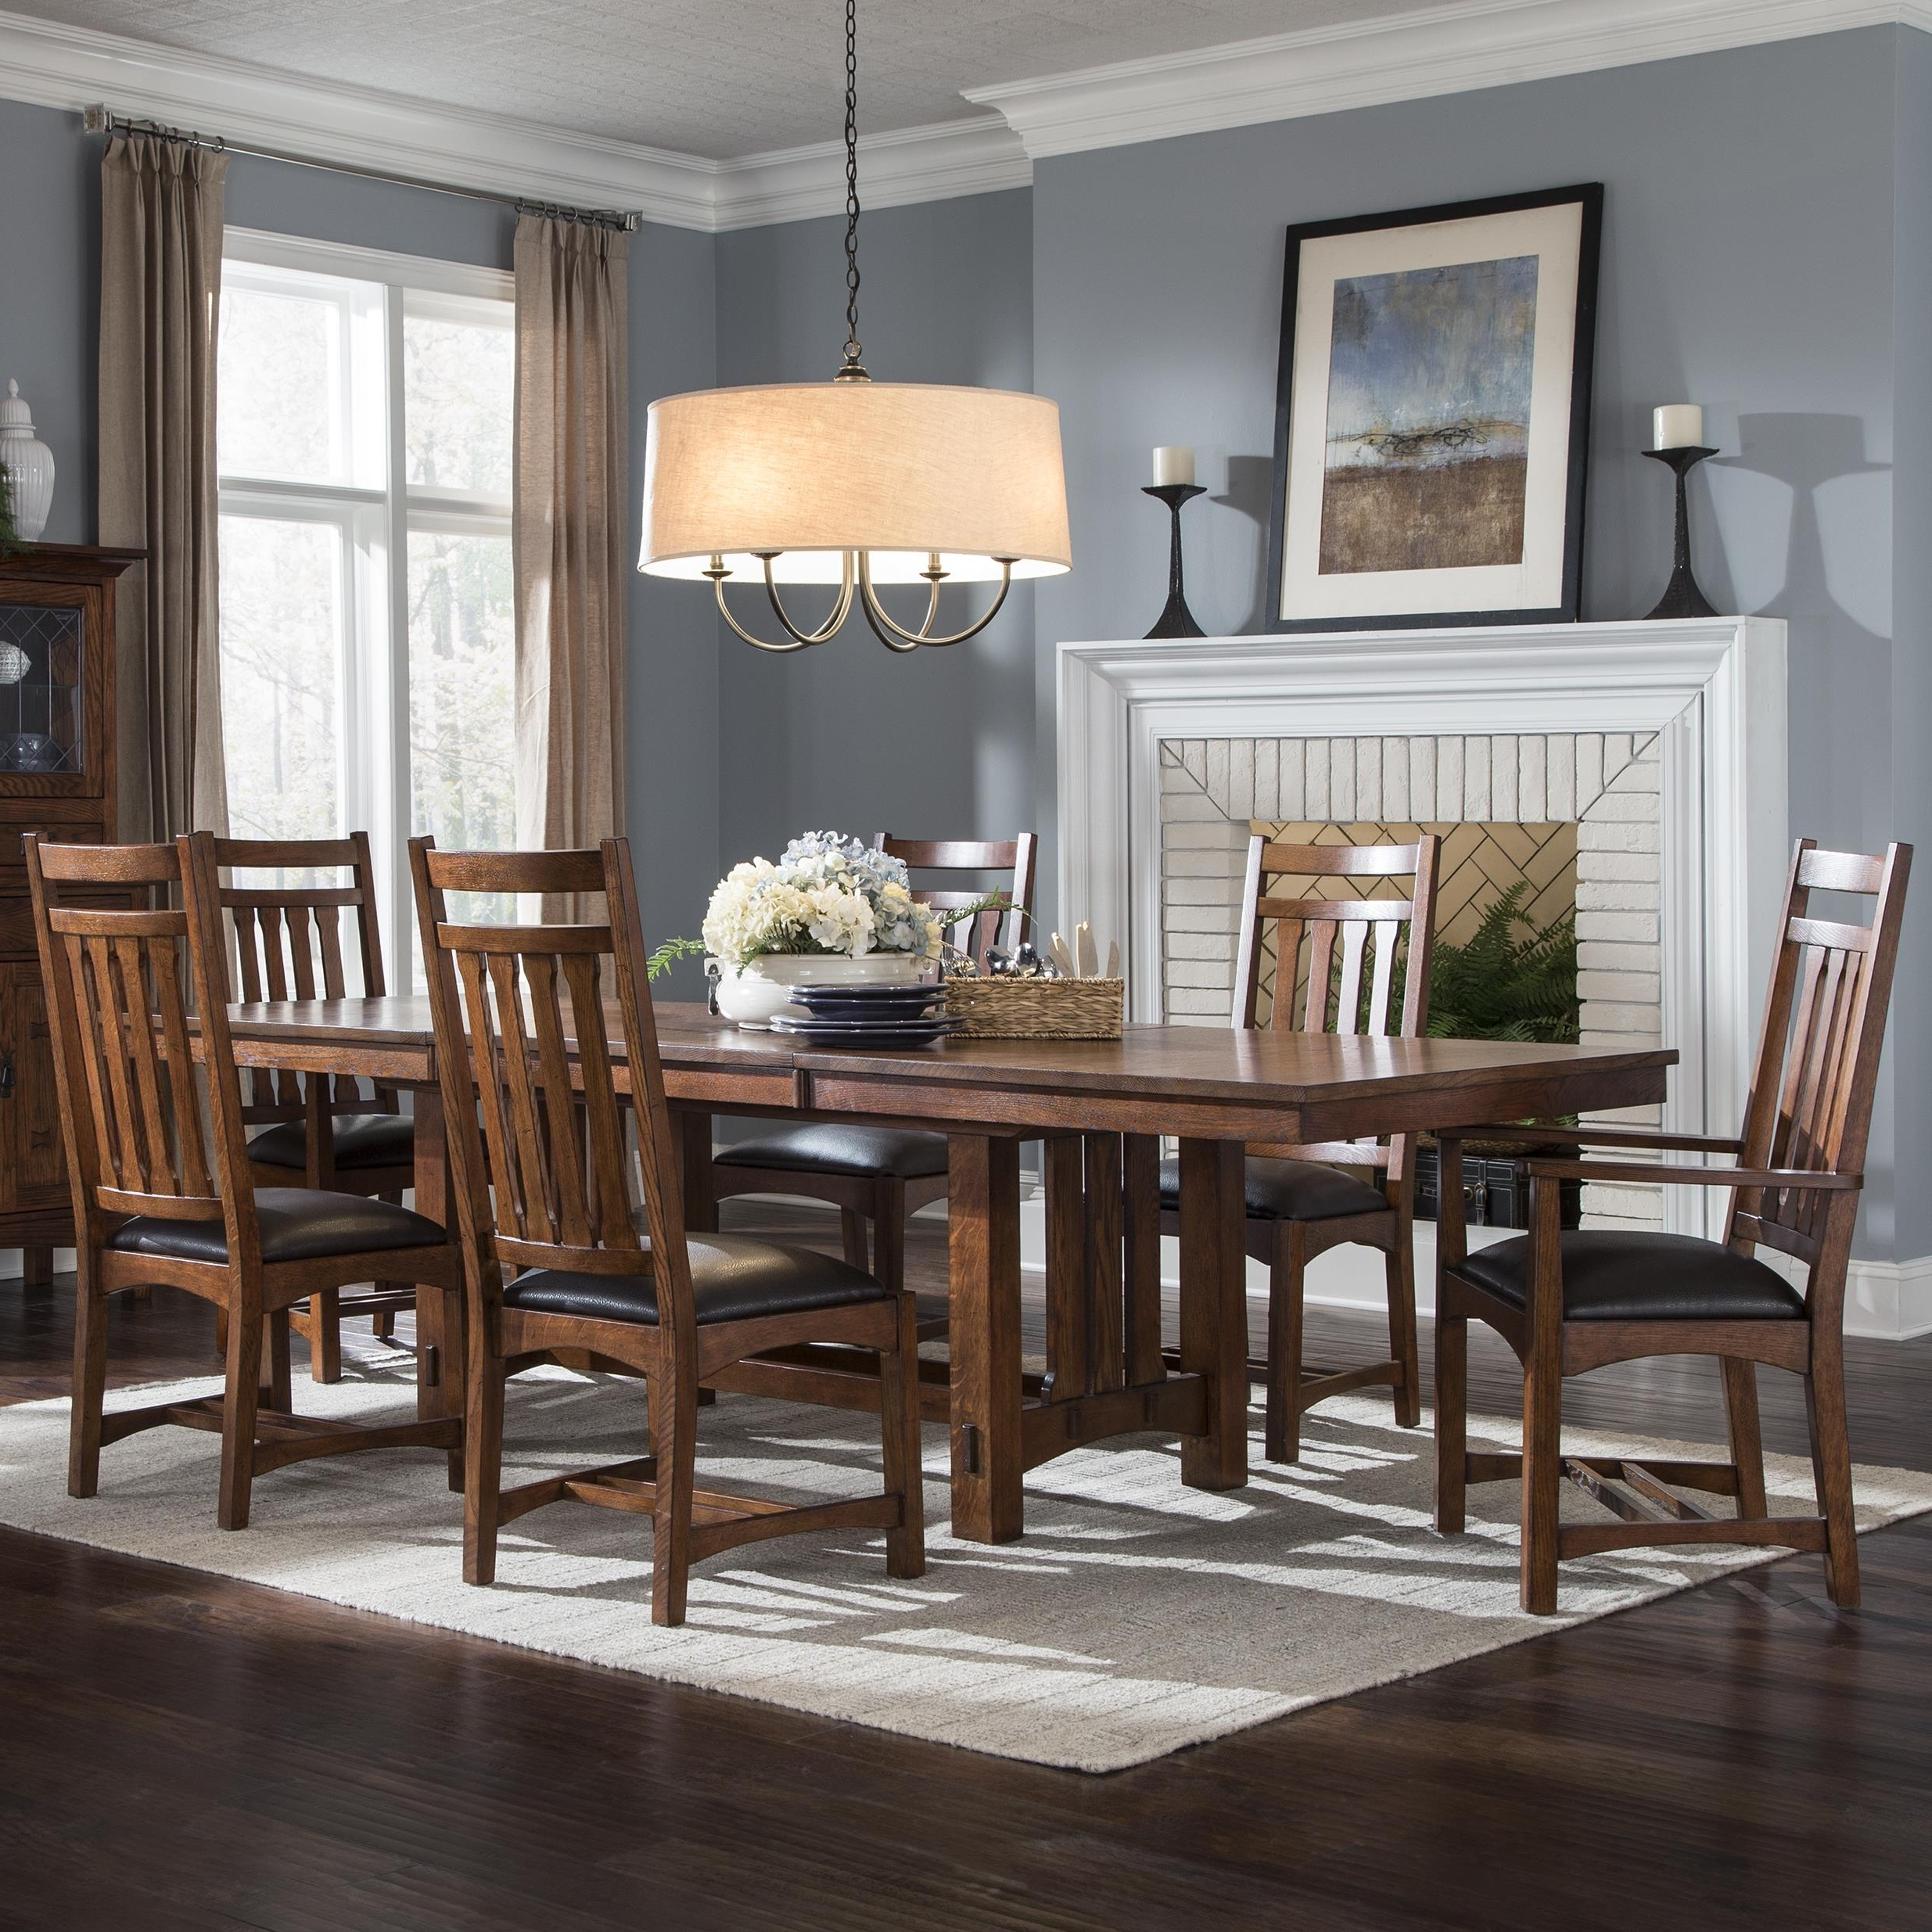 Newest Craftsman 7 Piece Rectangular Extension Dining Sets With Arm & Uph Side Chairs with regard to Vfm Signature Oak Park 7 Piece Dining Set With Slat Back Chairs